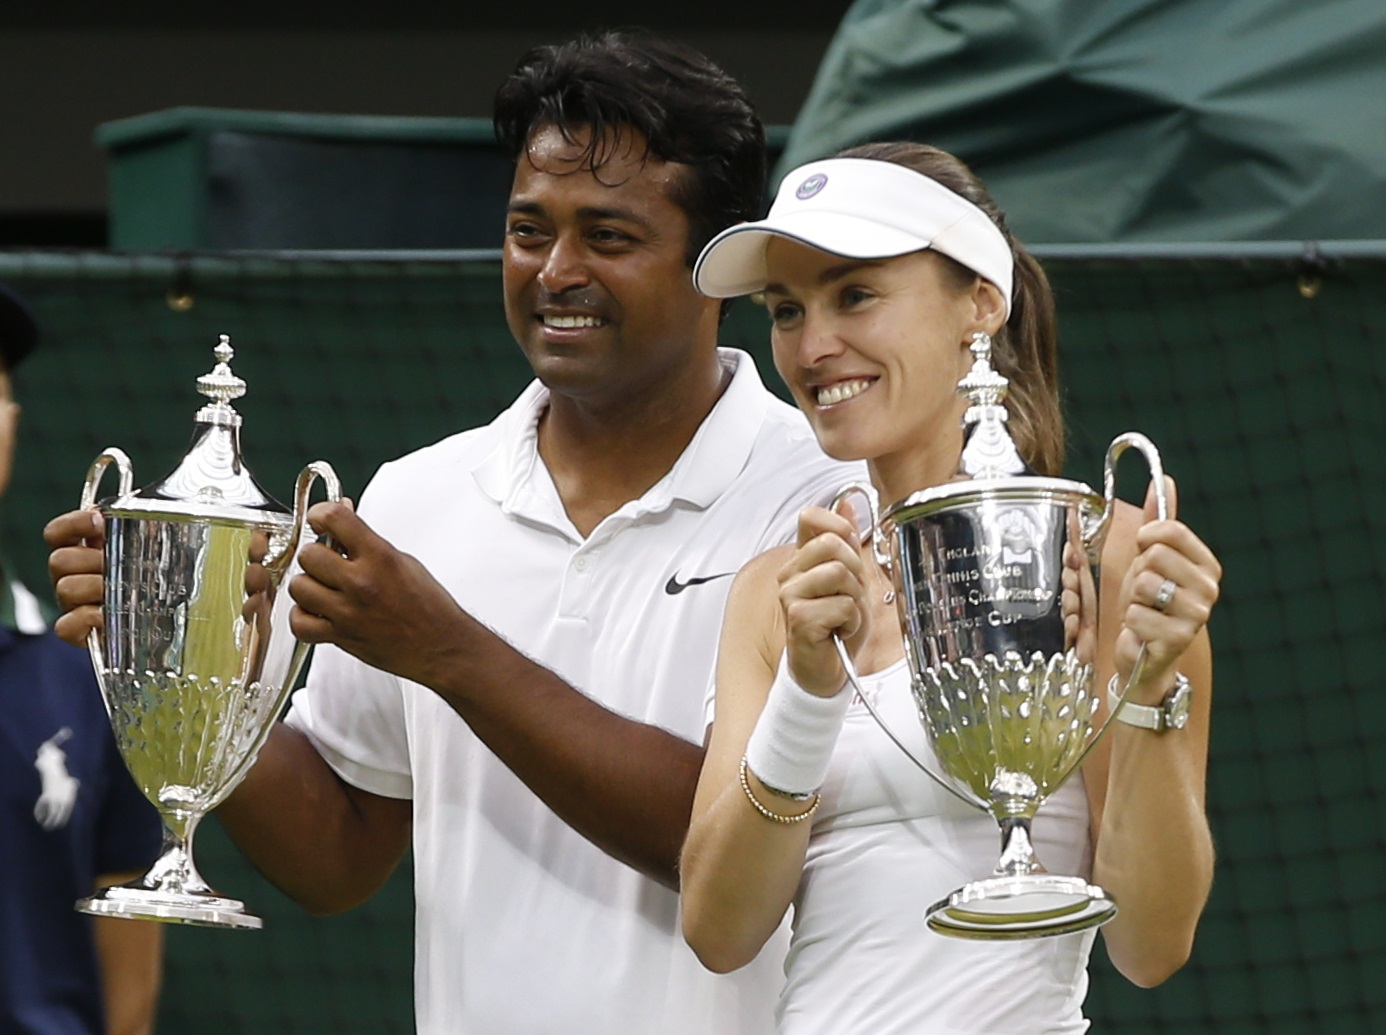 Kastles take aim at fifth straight title with trio of Wimbledon champs